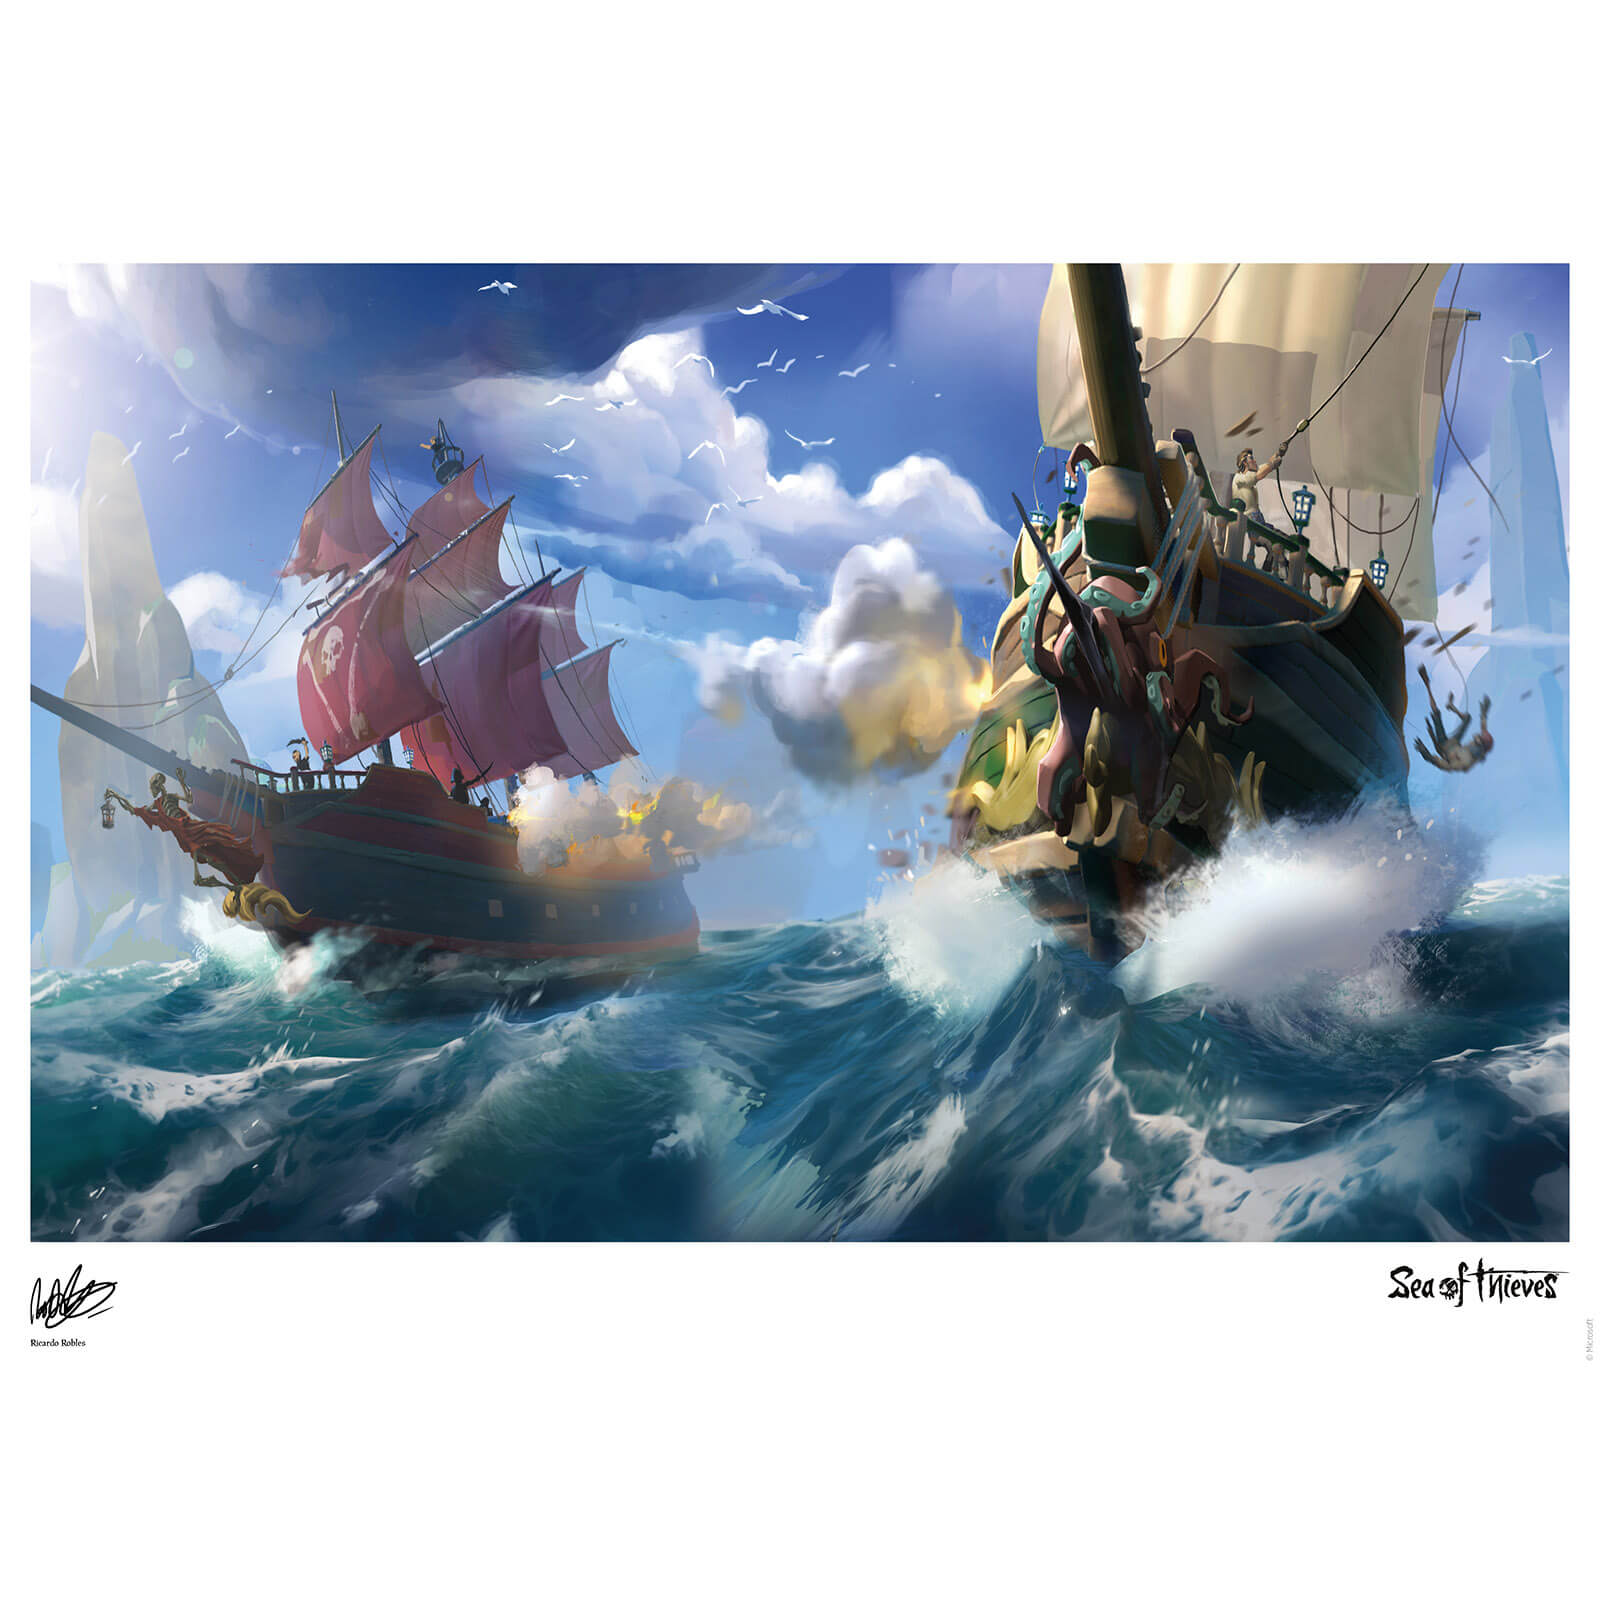 Sea Of Thieves - Broadsides at noon Limited Edition Art Print Measures 41.91 x 29.72cm